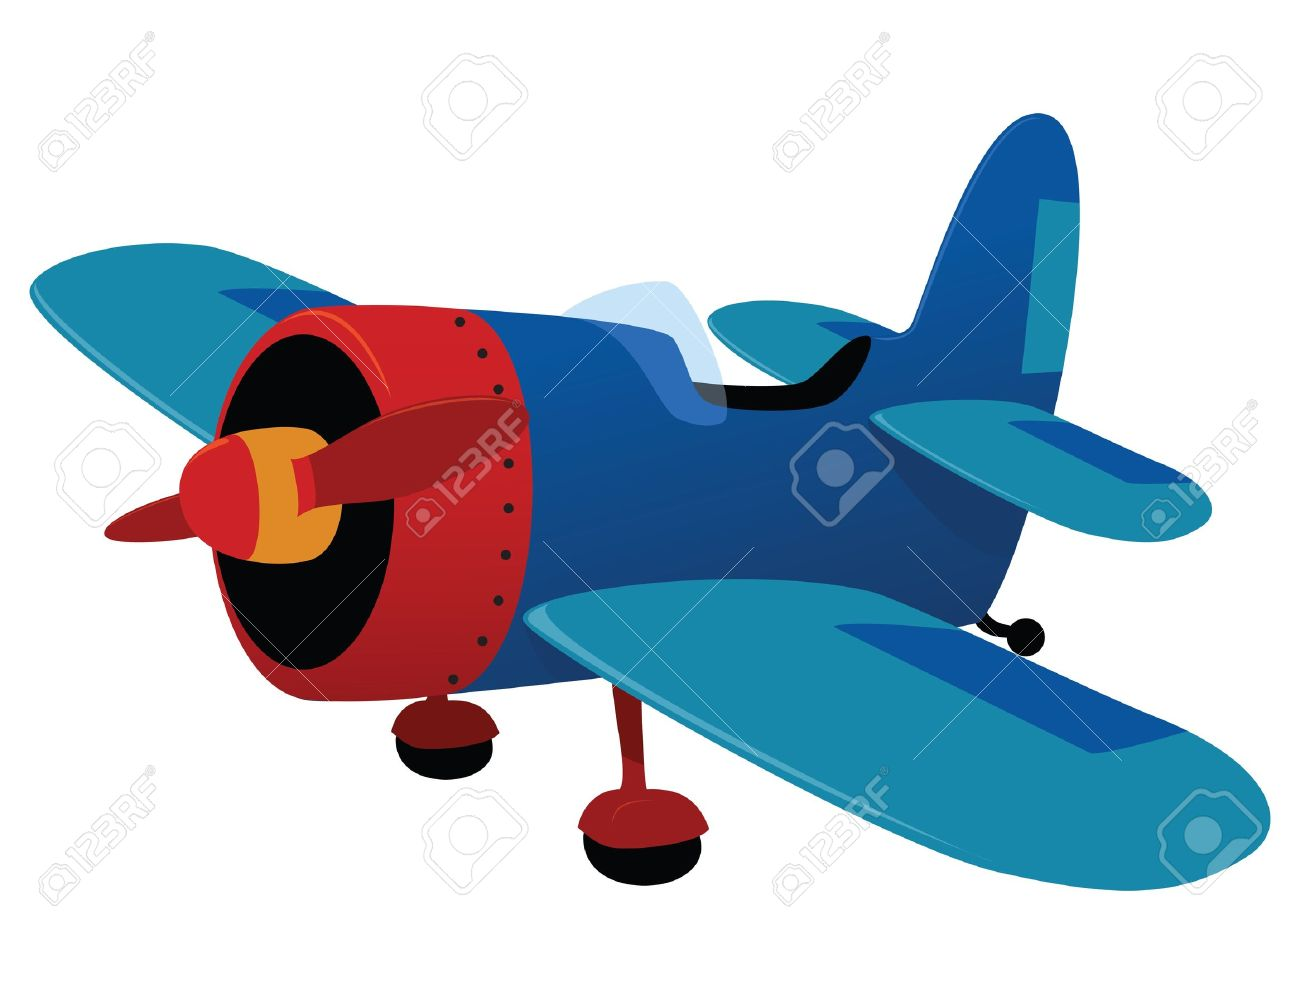 Retro Plane Toy. Vector Illustration Royalty Free Cliparts ...